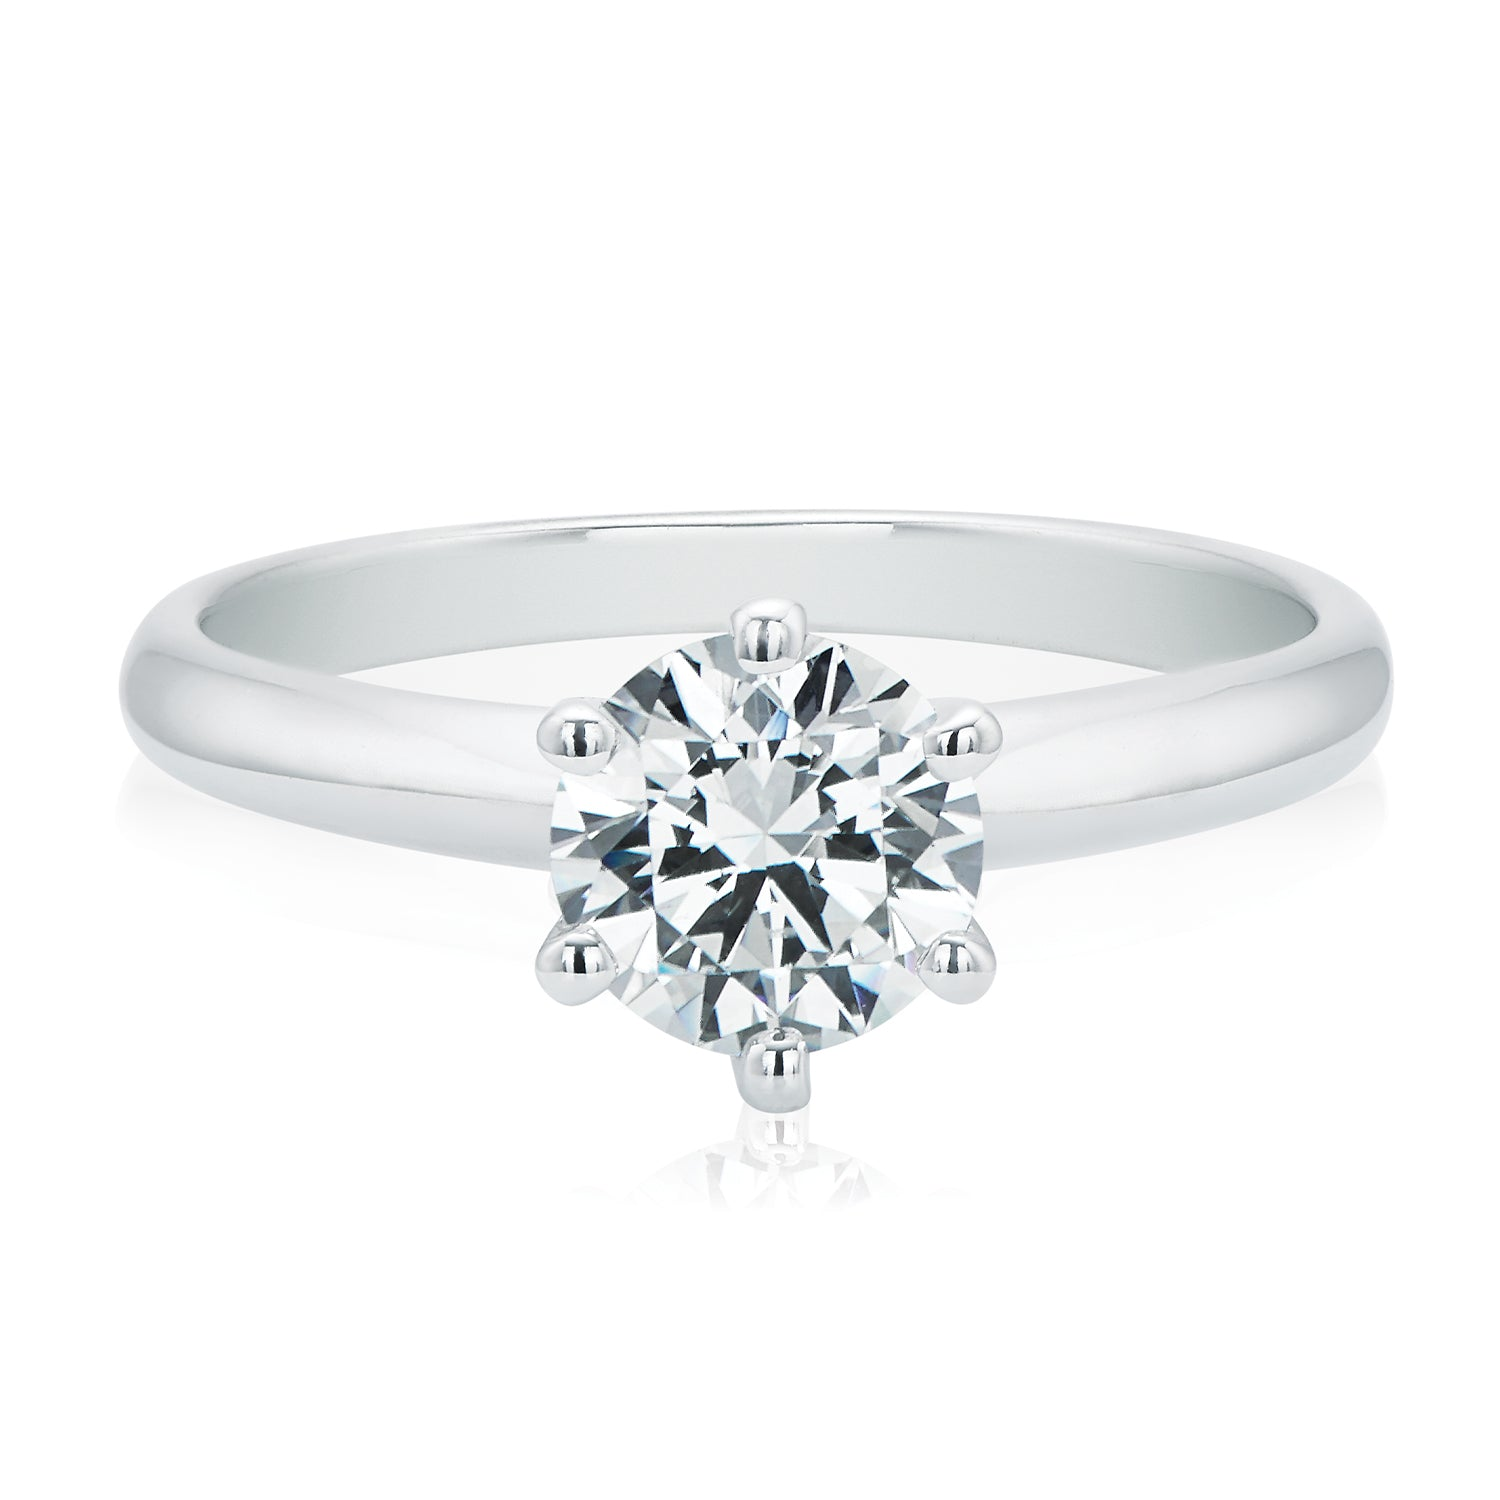 Promise 18ct White Gold Round Brilliant Cut with 1.20 CARAT of Diamonds